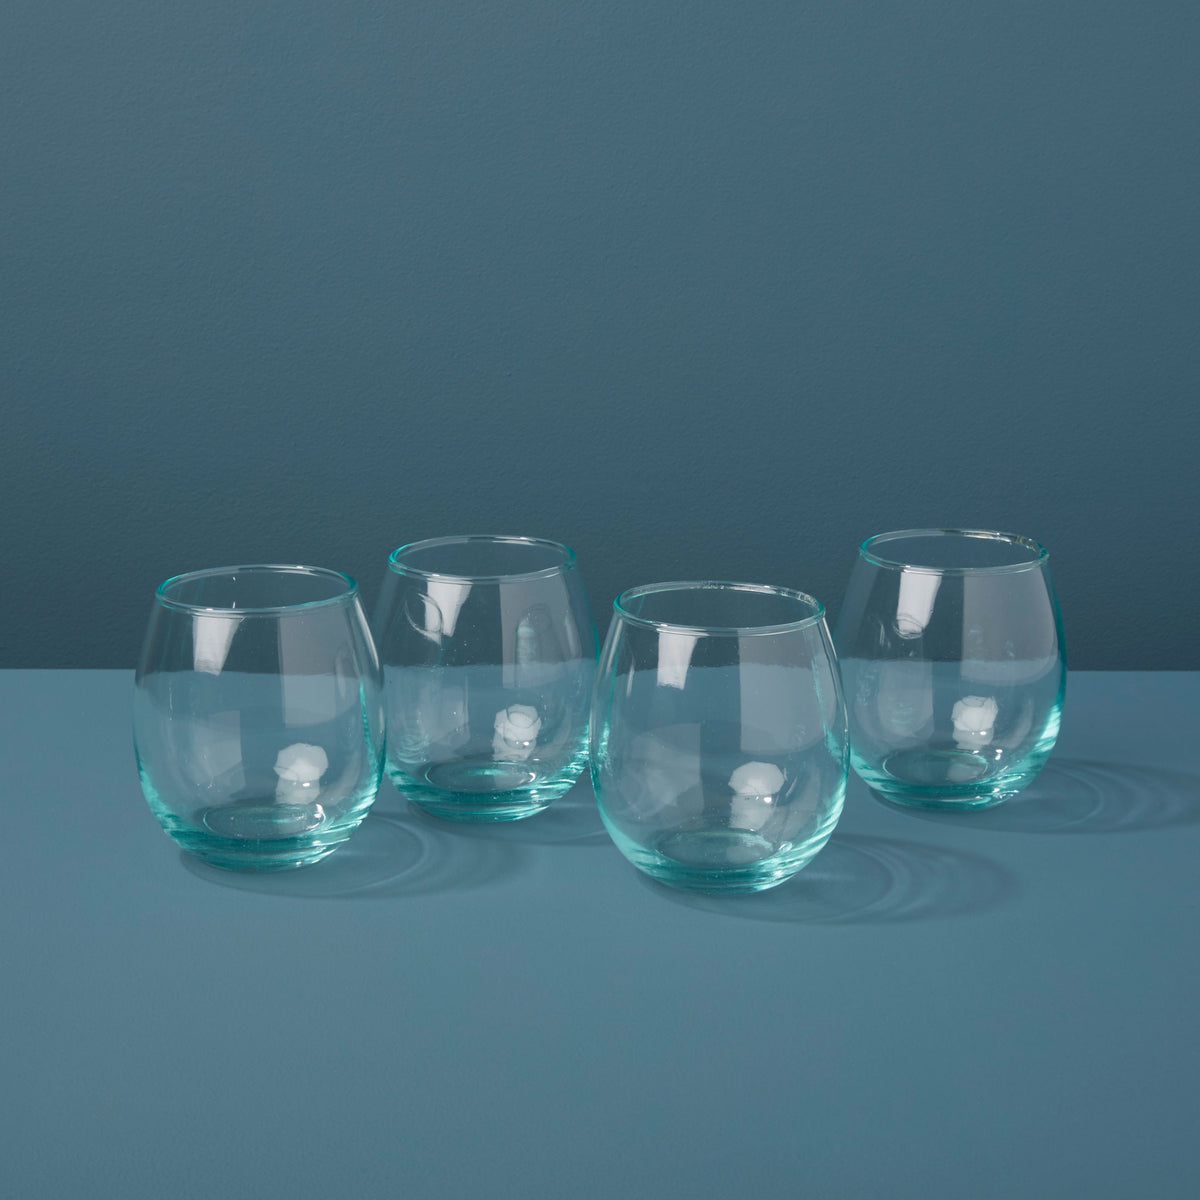 Premium Recycled Glass Stemless Wine Set of 4